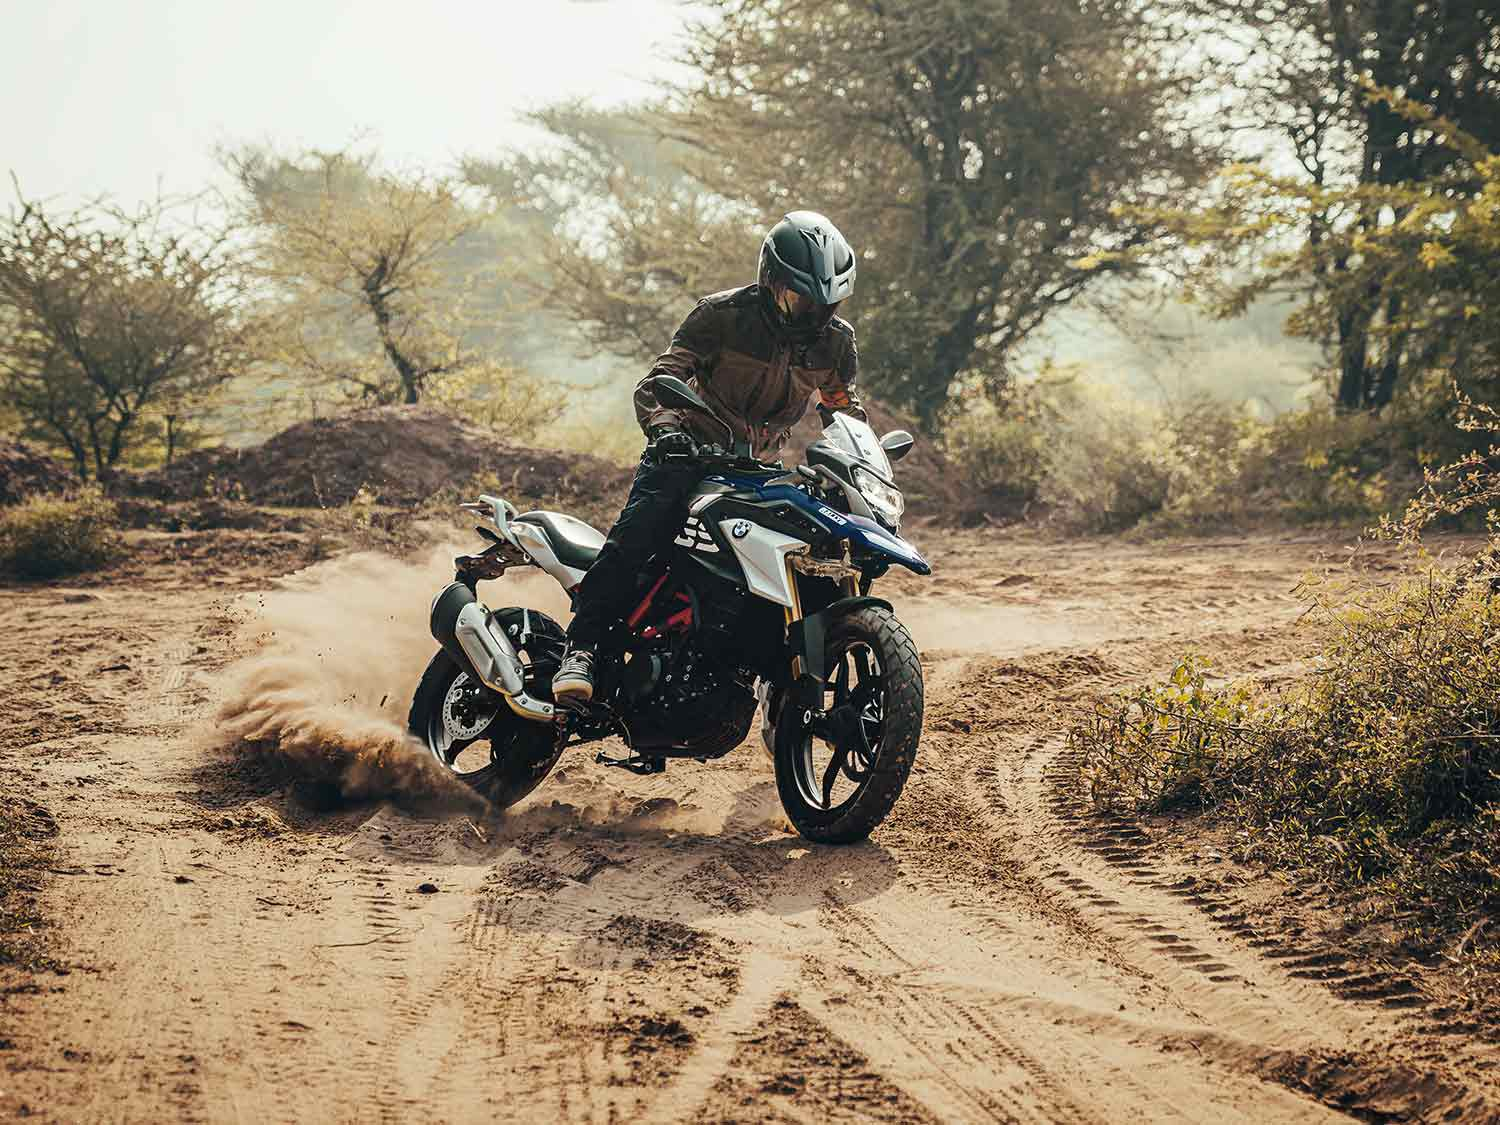 Ride-by-wire throttle means a more responsive feel at the bars.